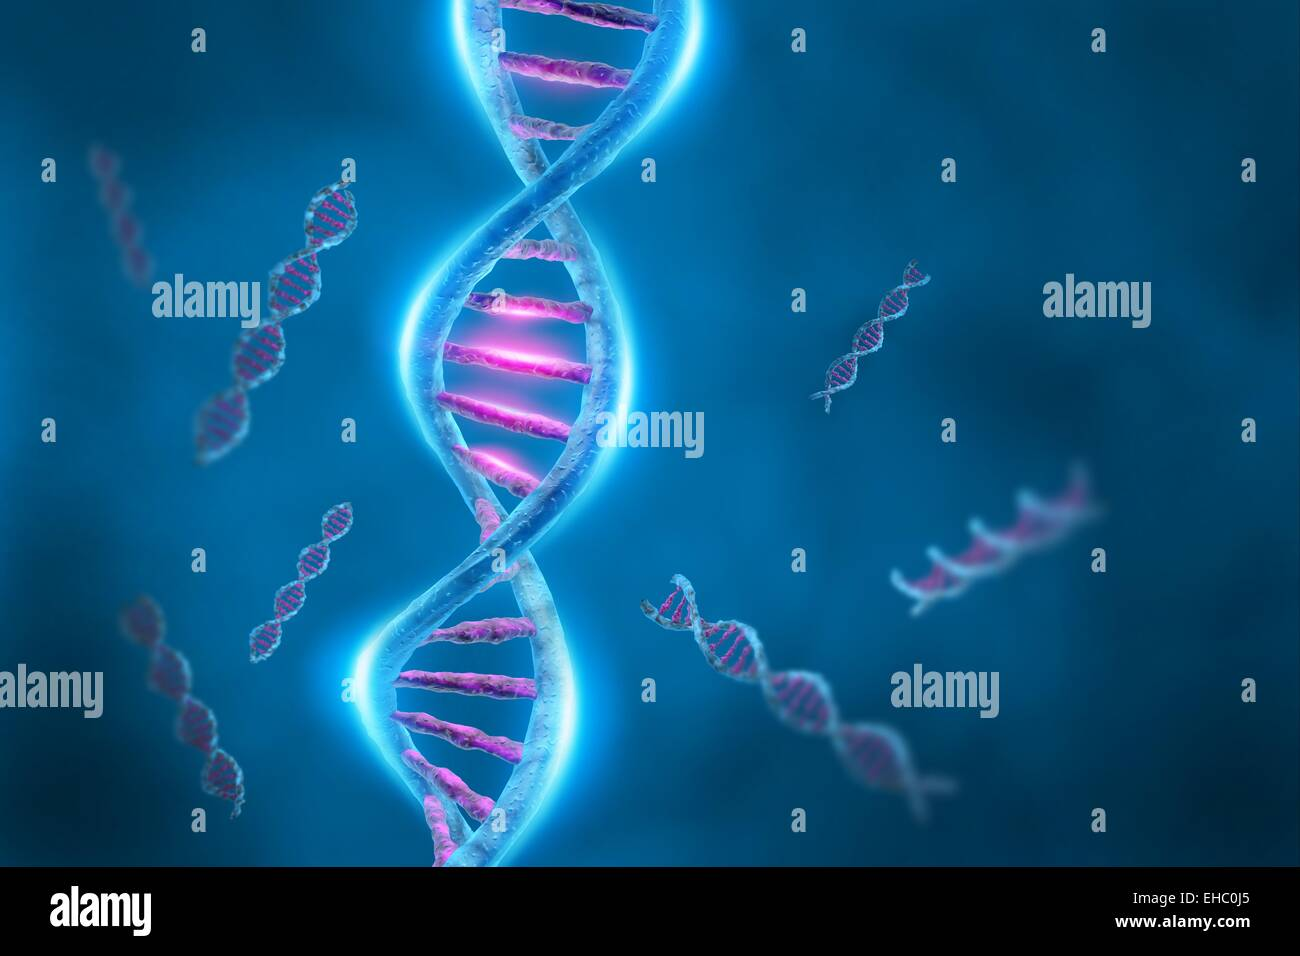 A 3D illustration representing the human DNA genetic material with double helix molecular strands. - Stock Image